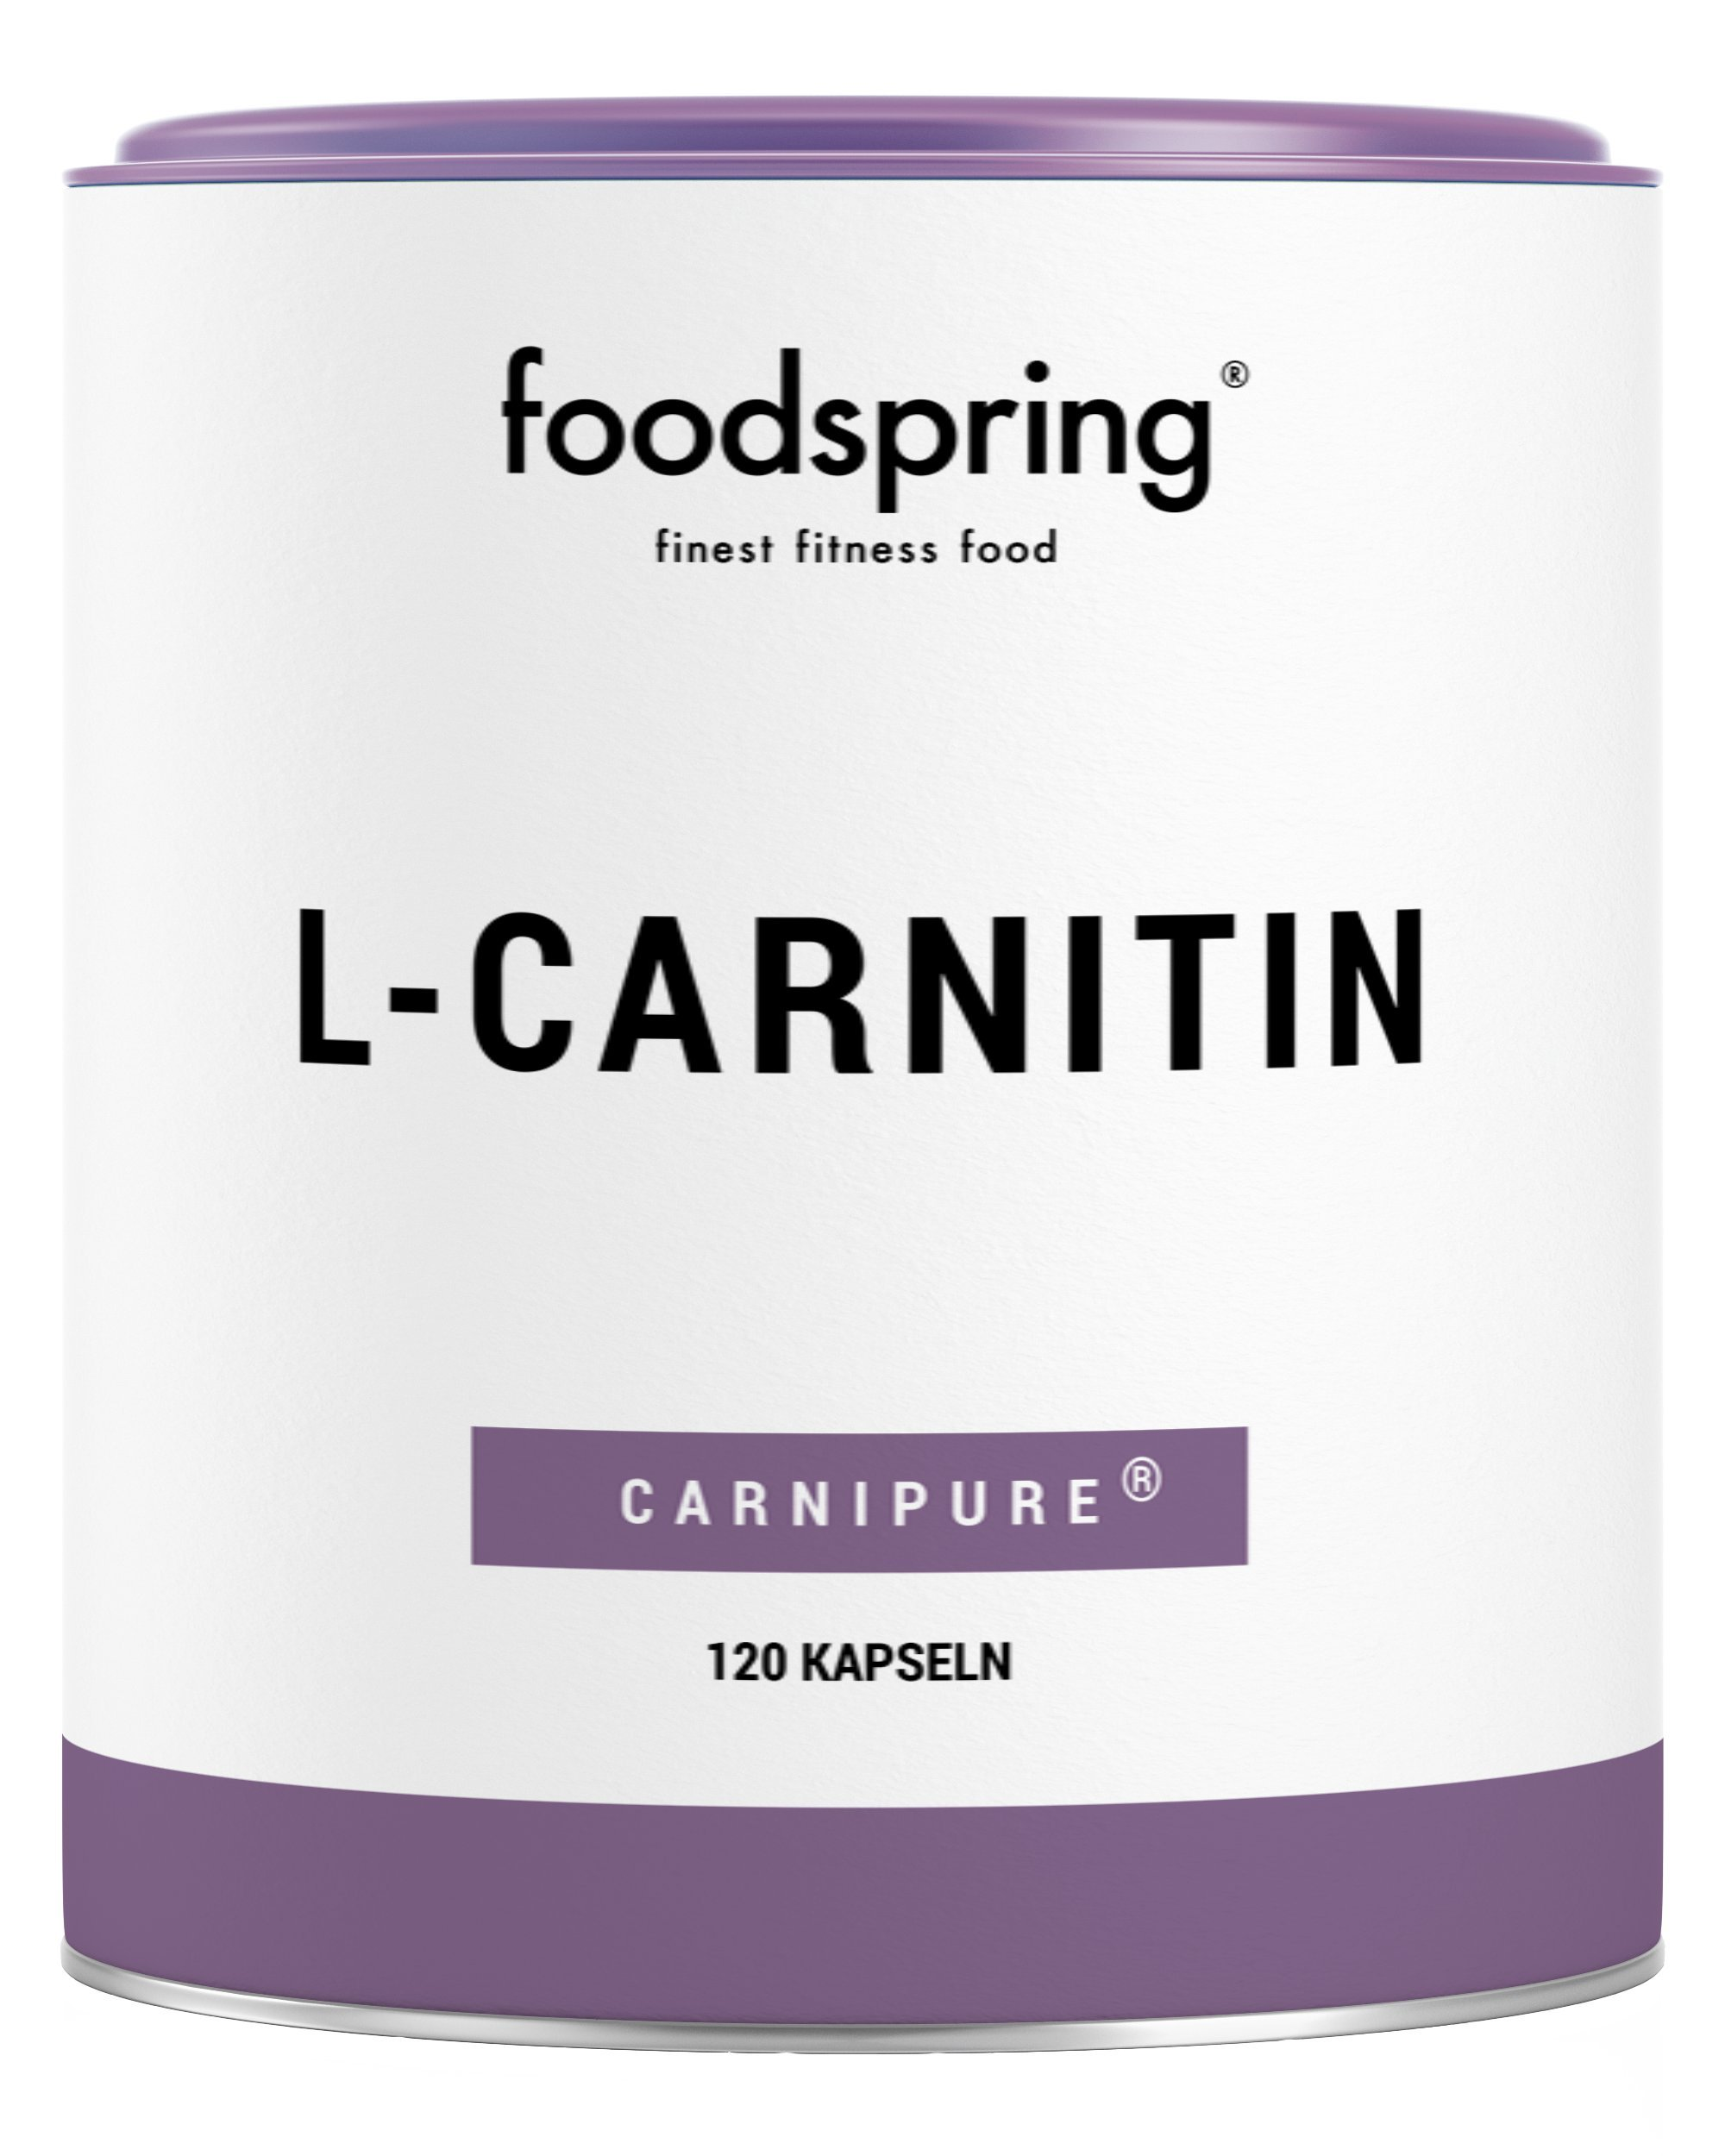 foodspring L-Carnitine, 120 Capsules, Vegan supplement ideal for shape training with 1000mg Carnipure per 100g